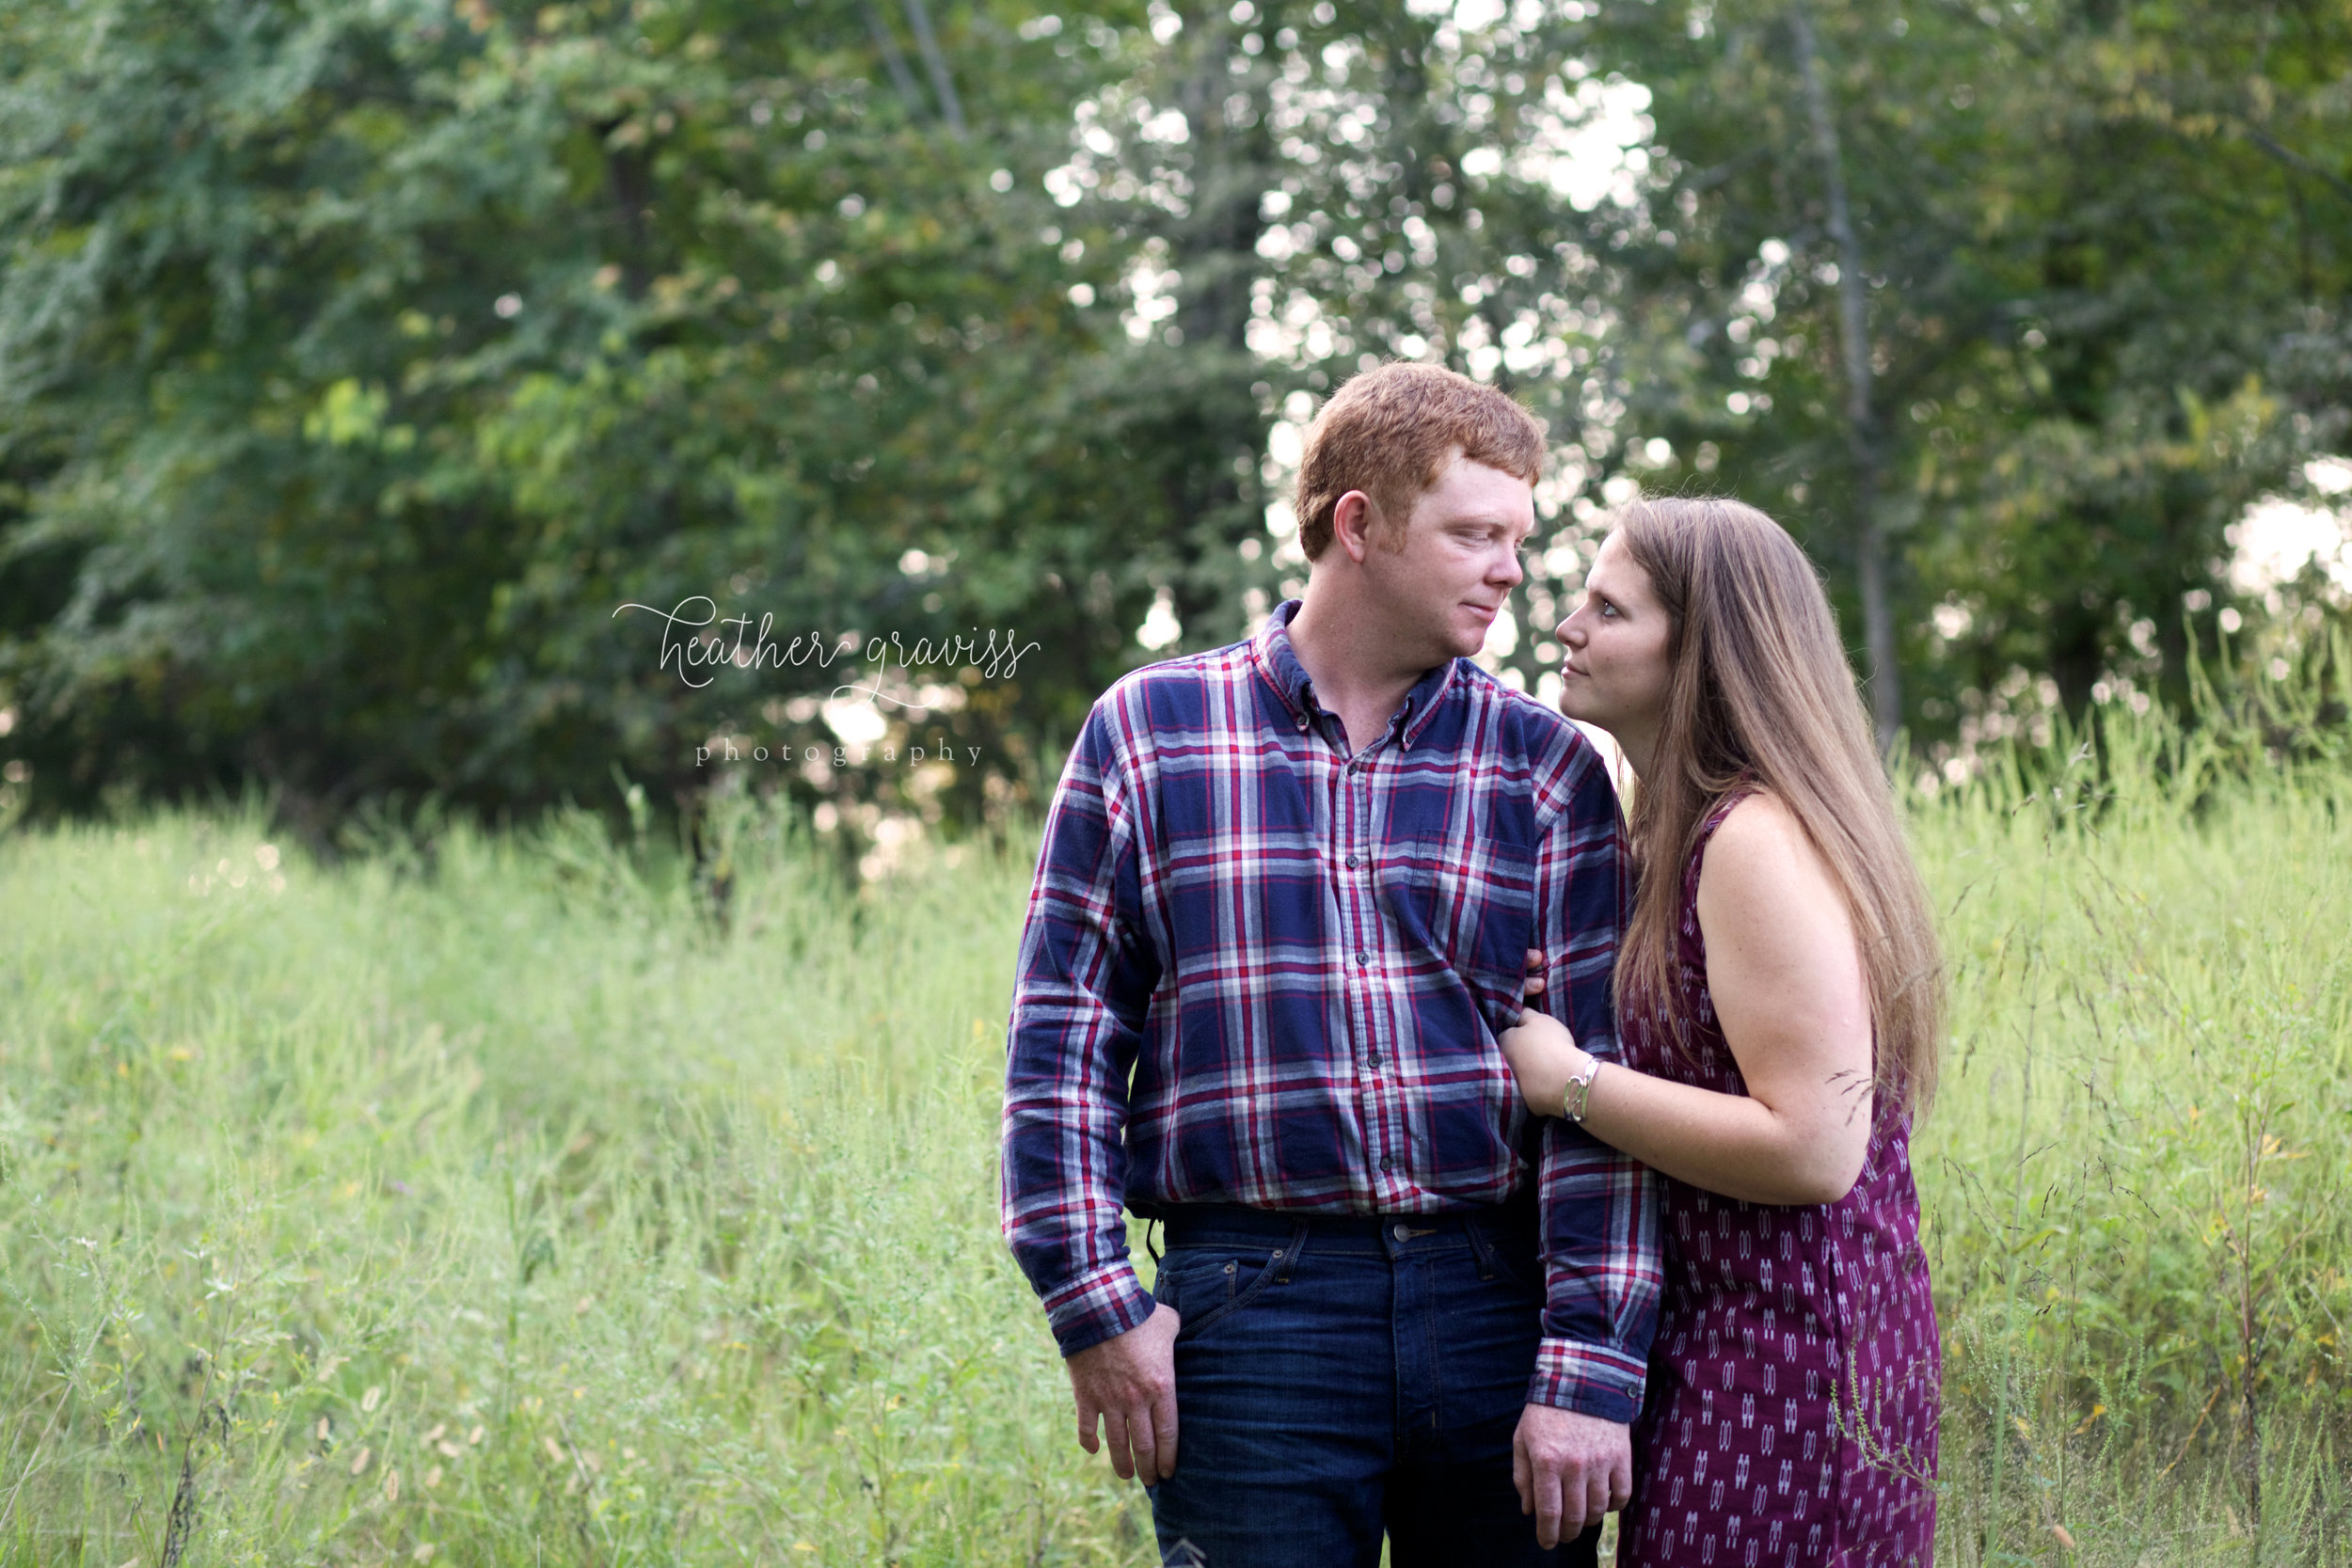 nashville middle tn engagement photographer 283.jpg